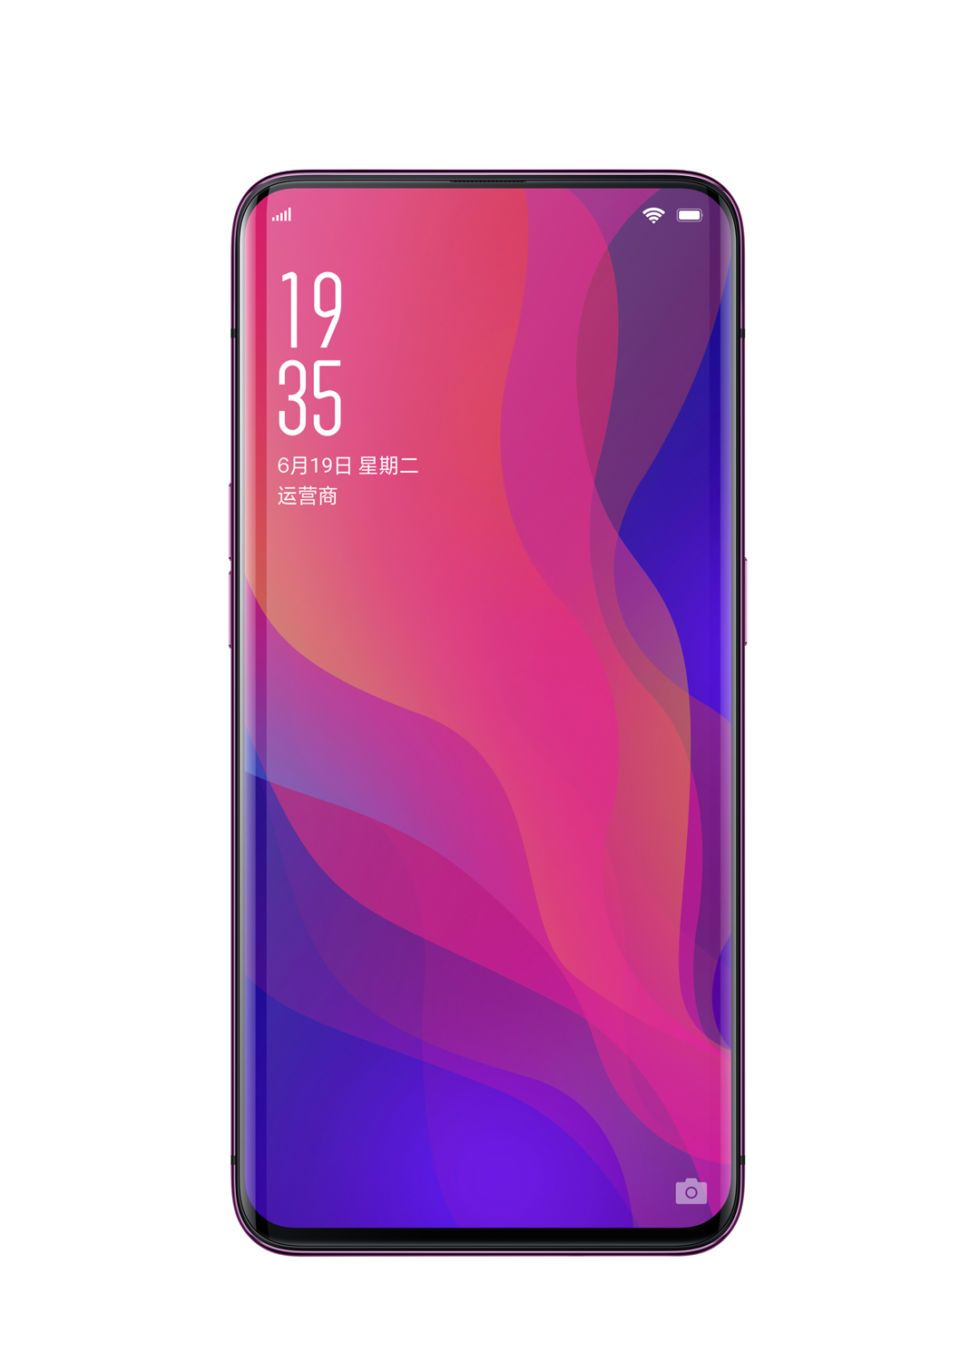 The Oppo Find X kills the smartphone notch with a motorized pop-up ...